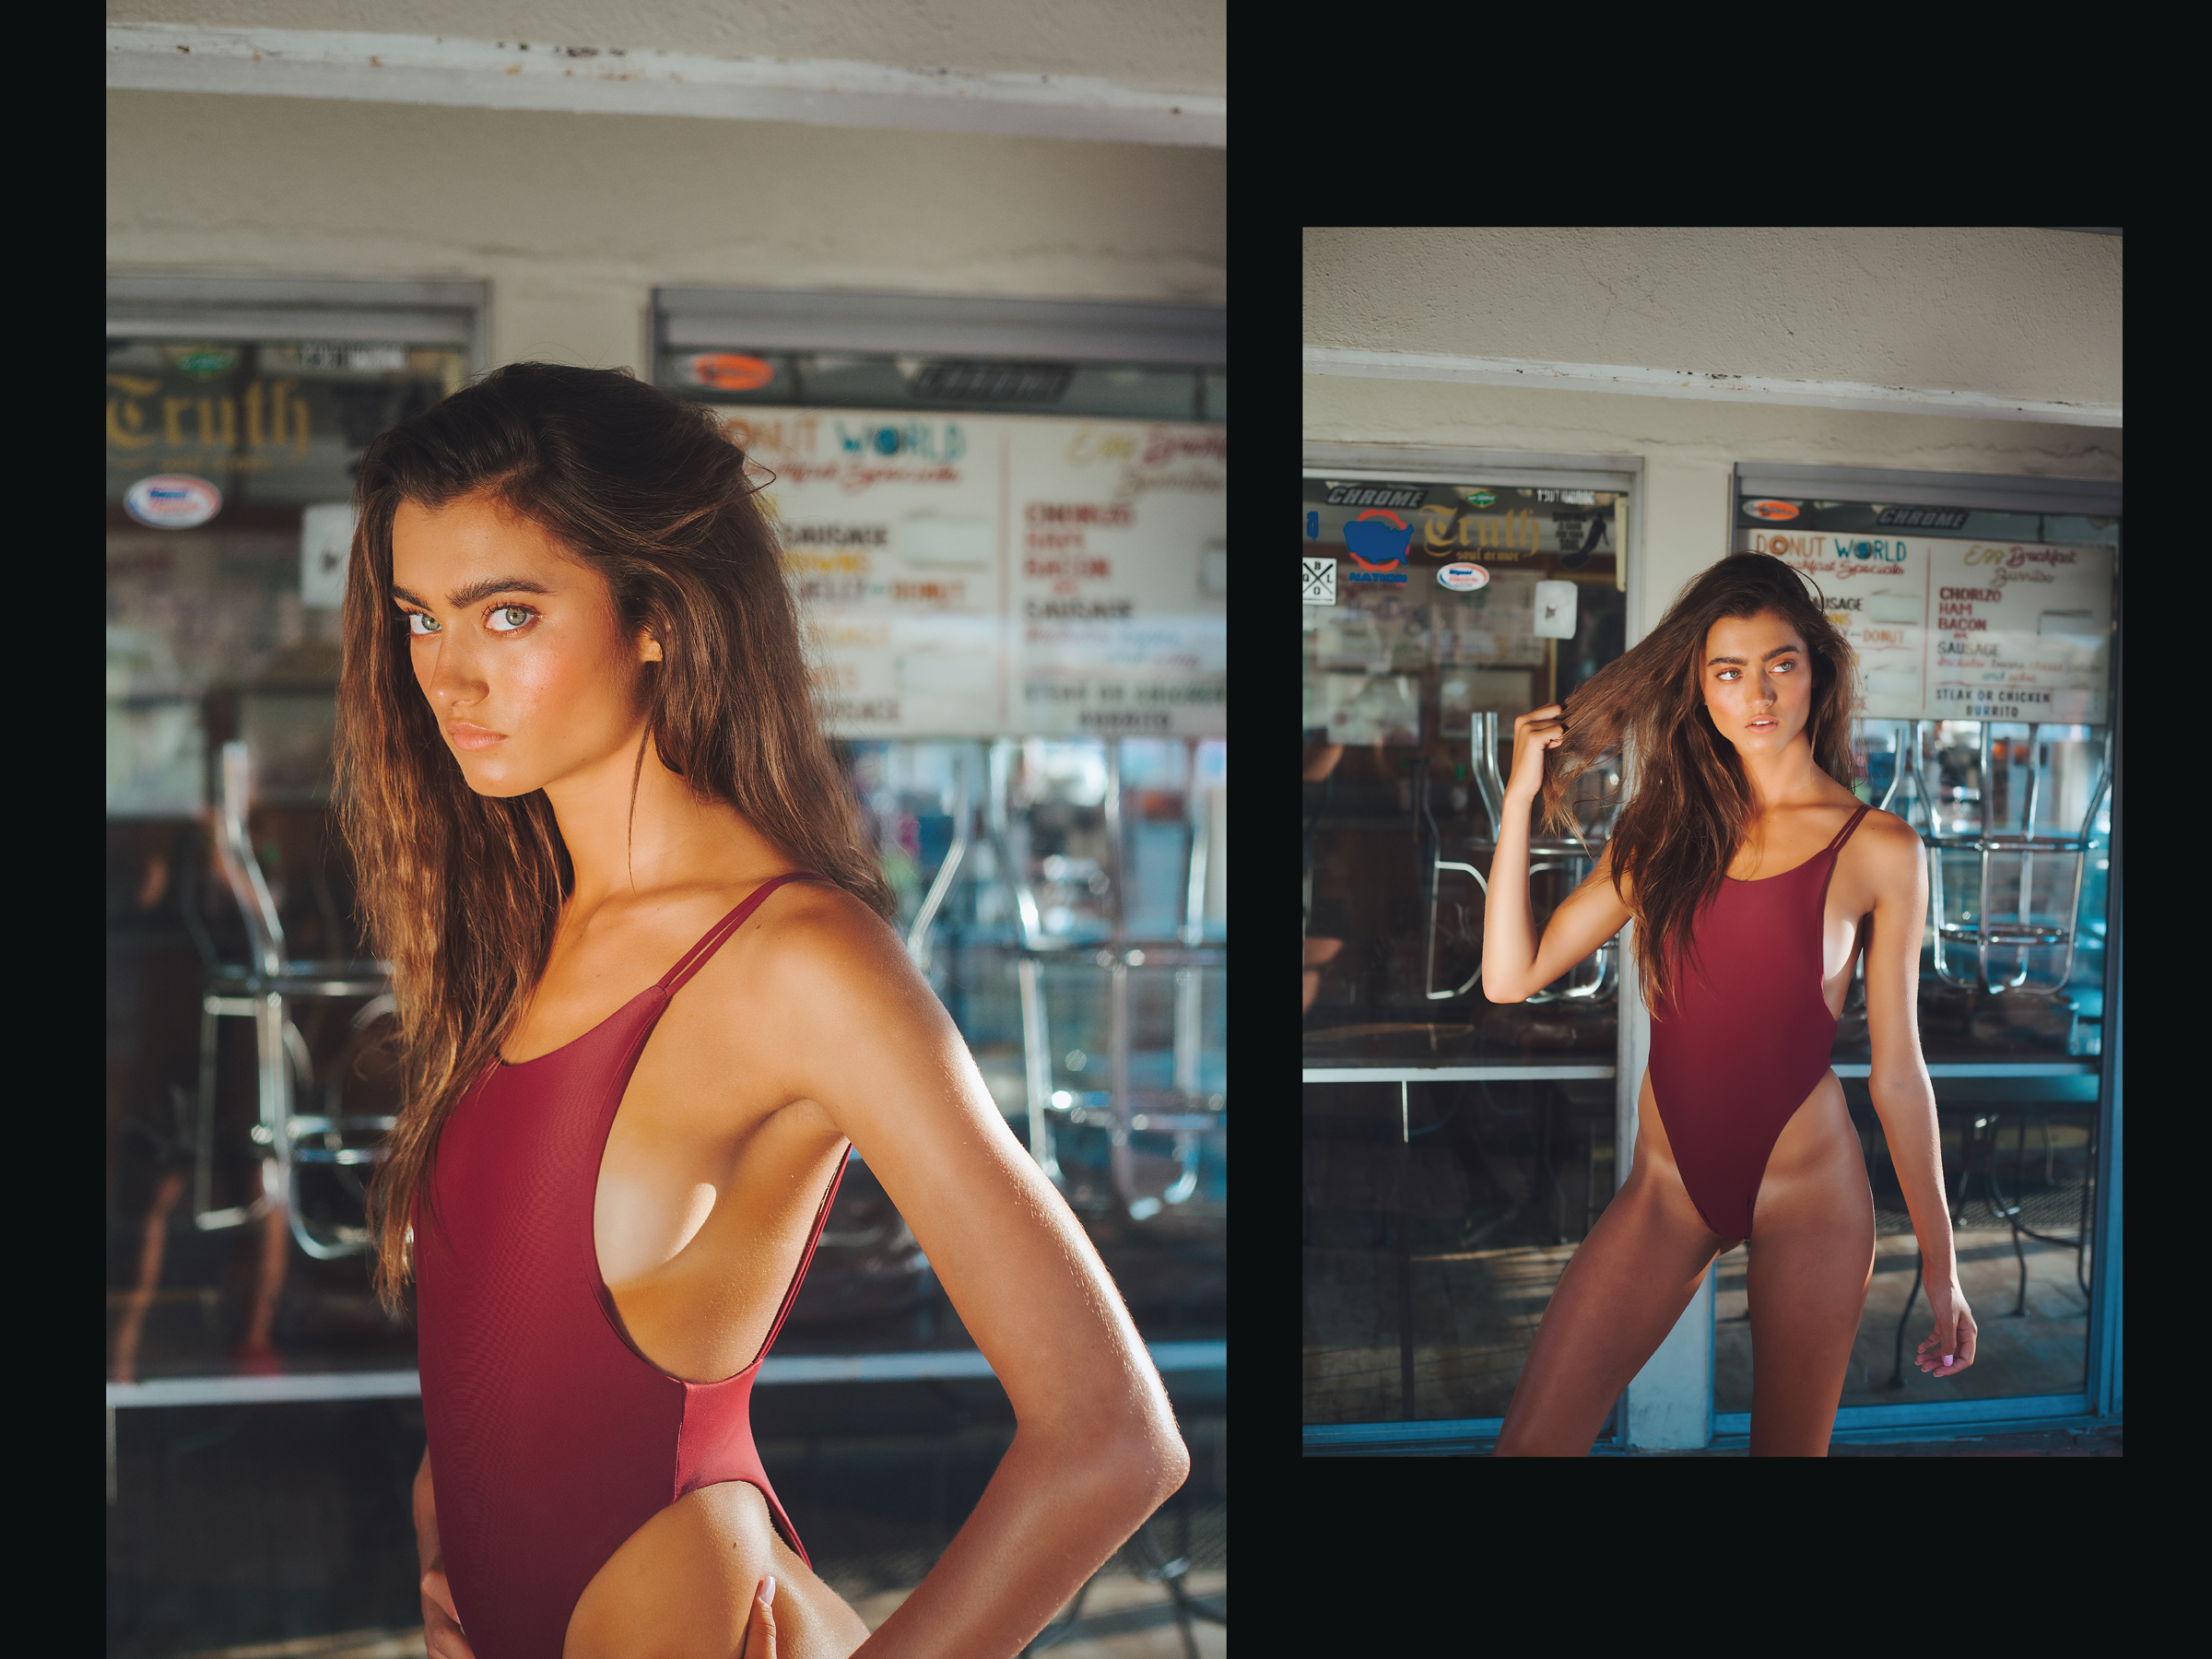 Lookbook design for Kokoa Swim brand, shot in Californina, 5/10